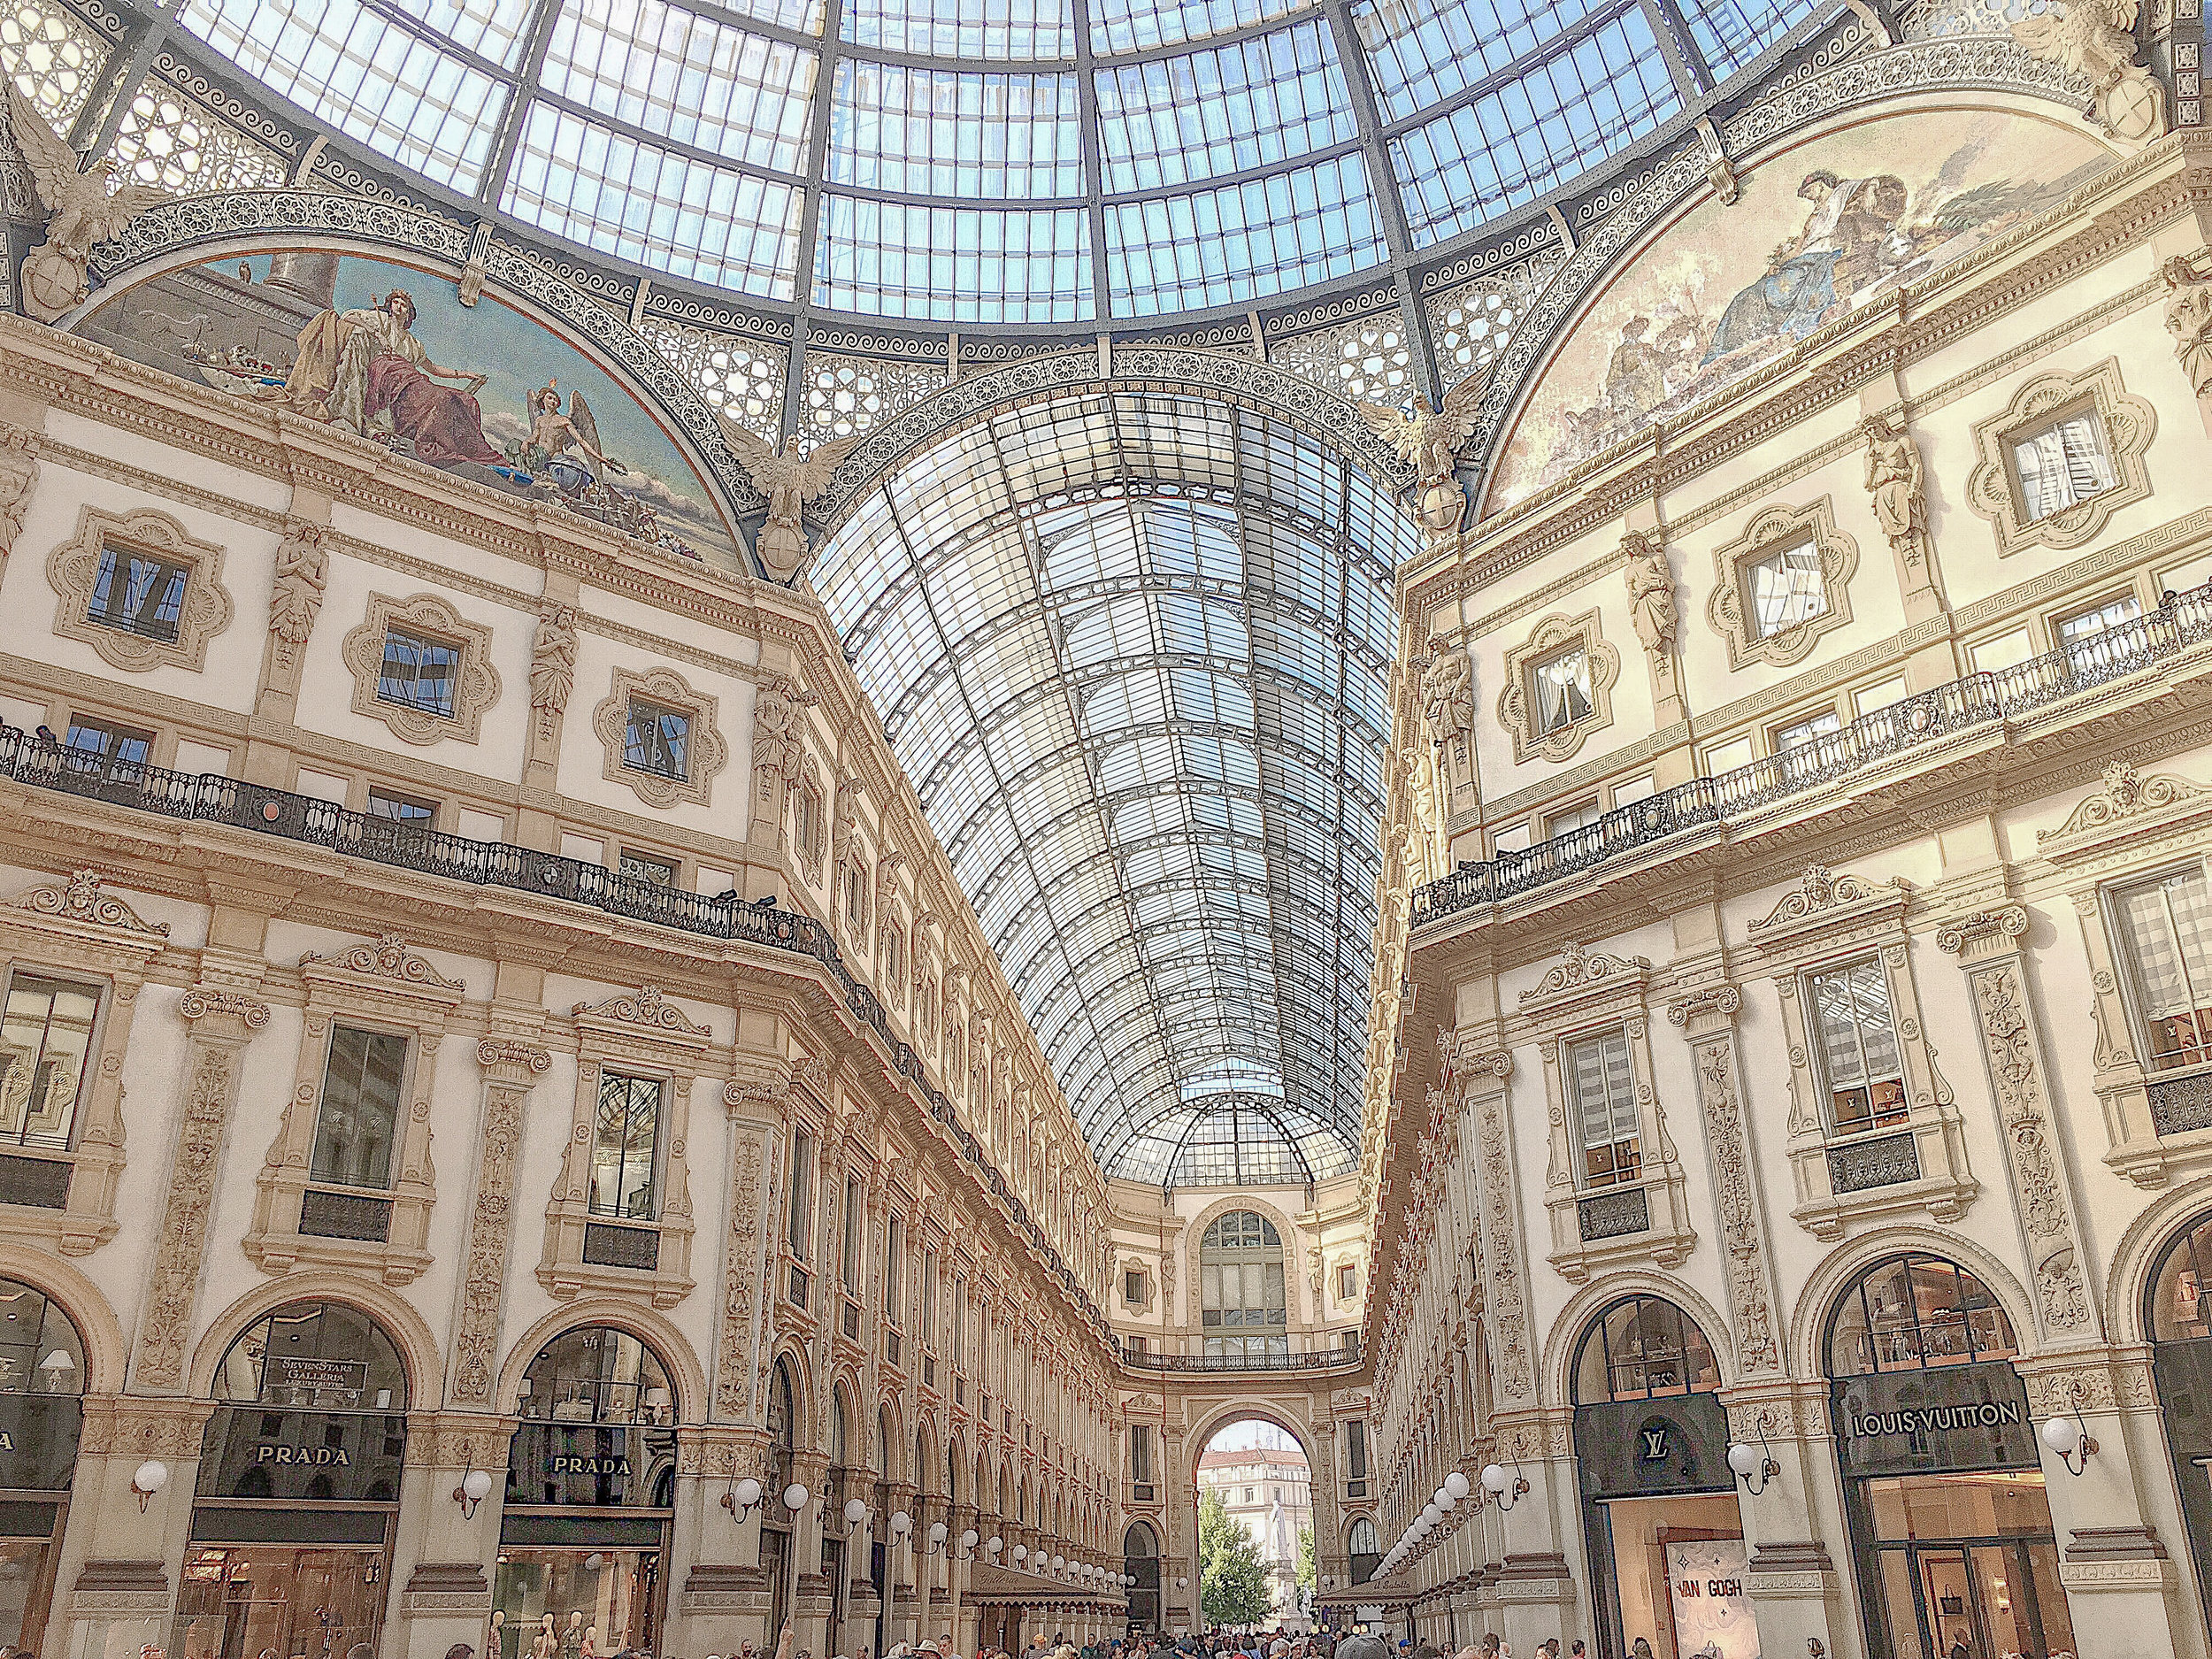 Shopping galleria Milan Photo by Linda Haggh.jpg